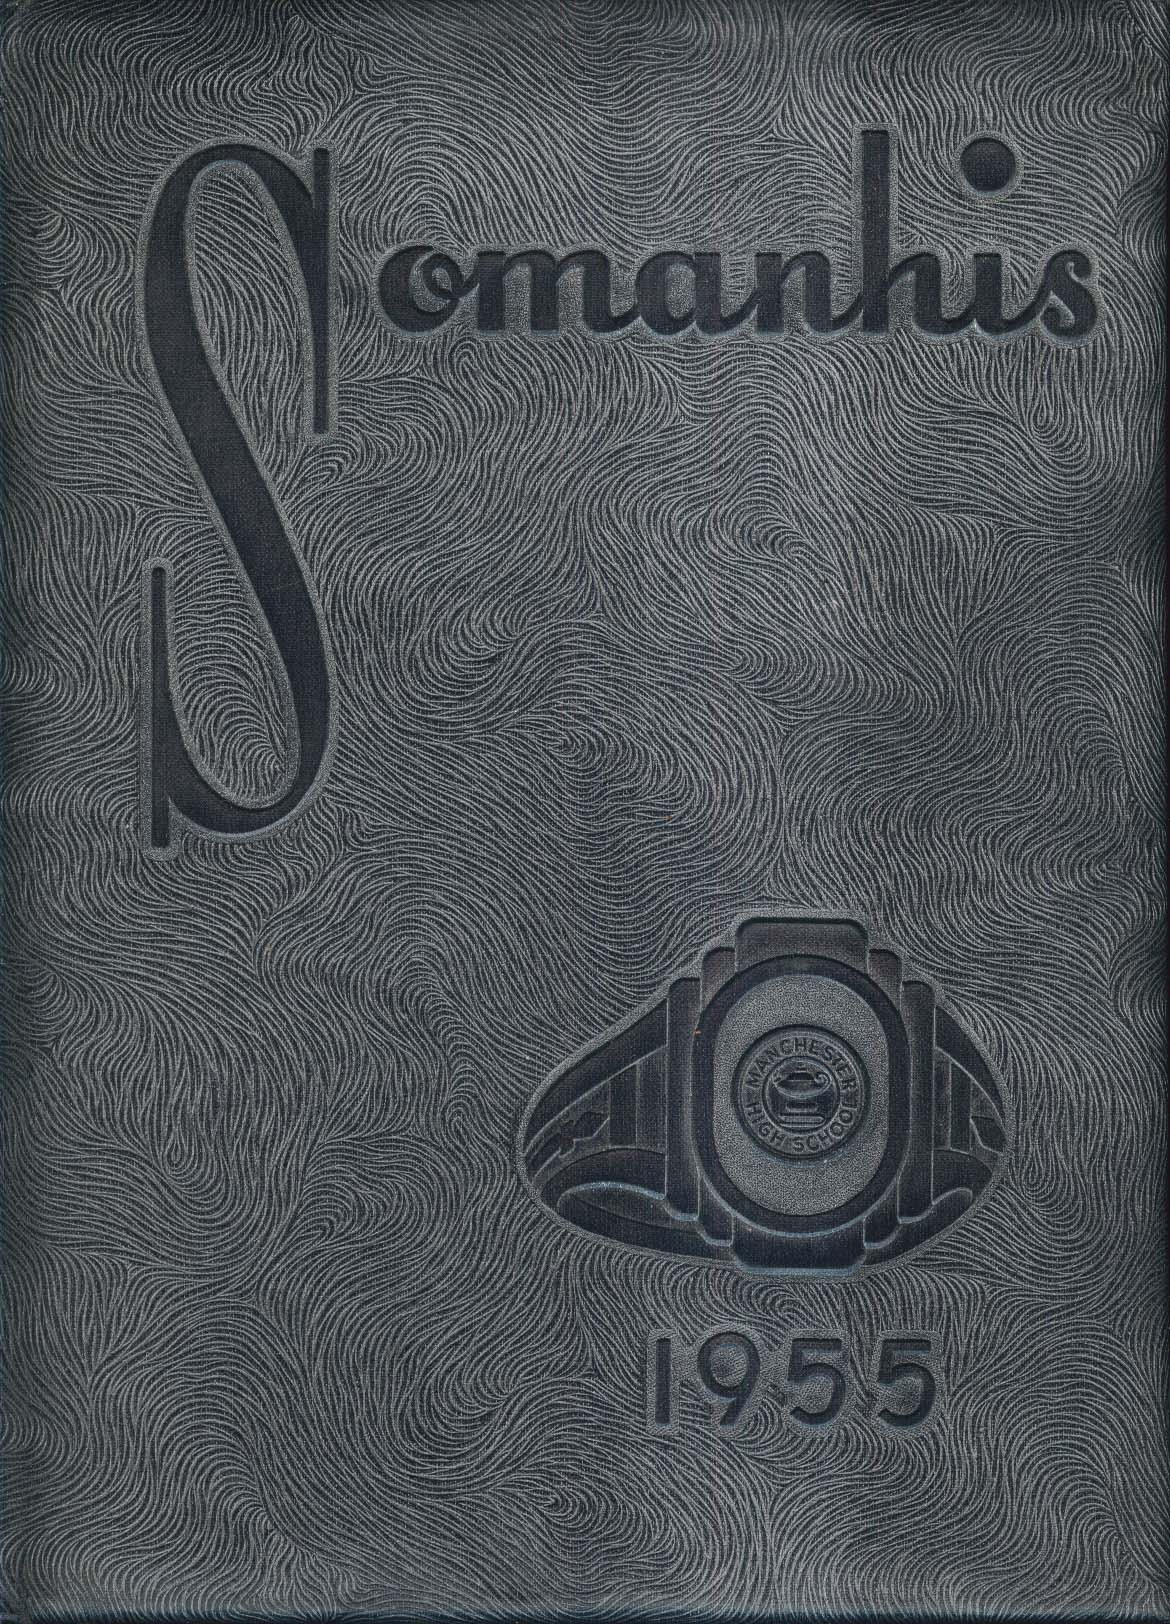 Image for Somanhis 1955 South Manchester High School Connecticut Yearbook Moe Morhardt